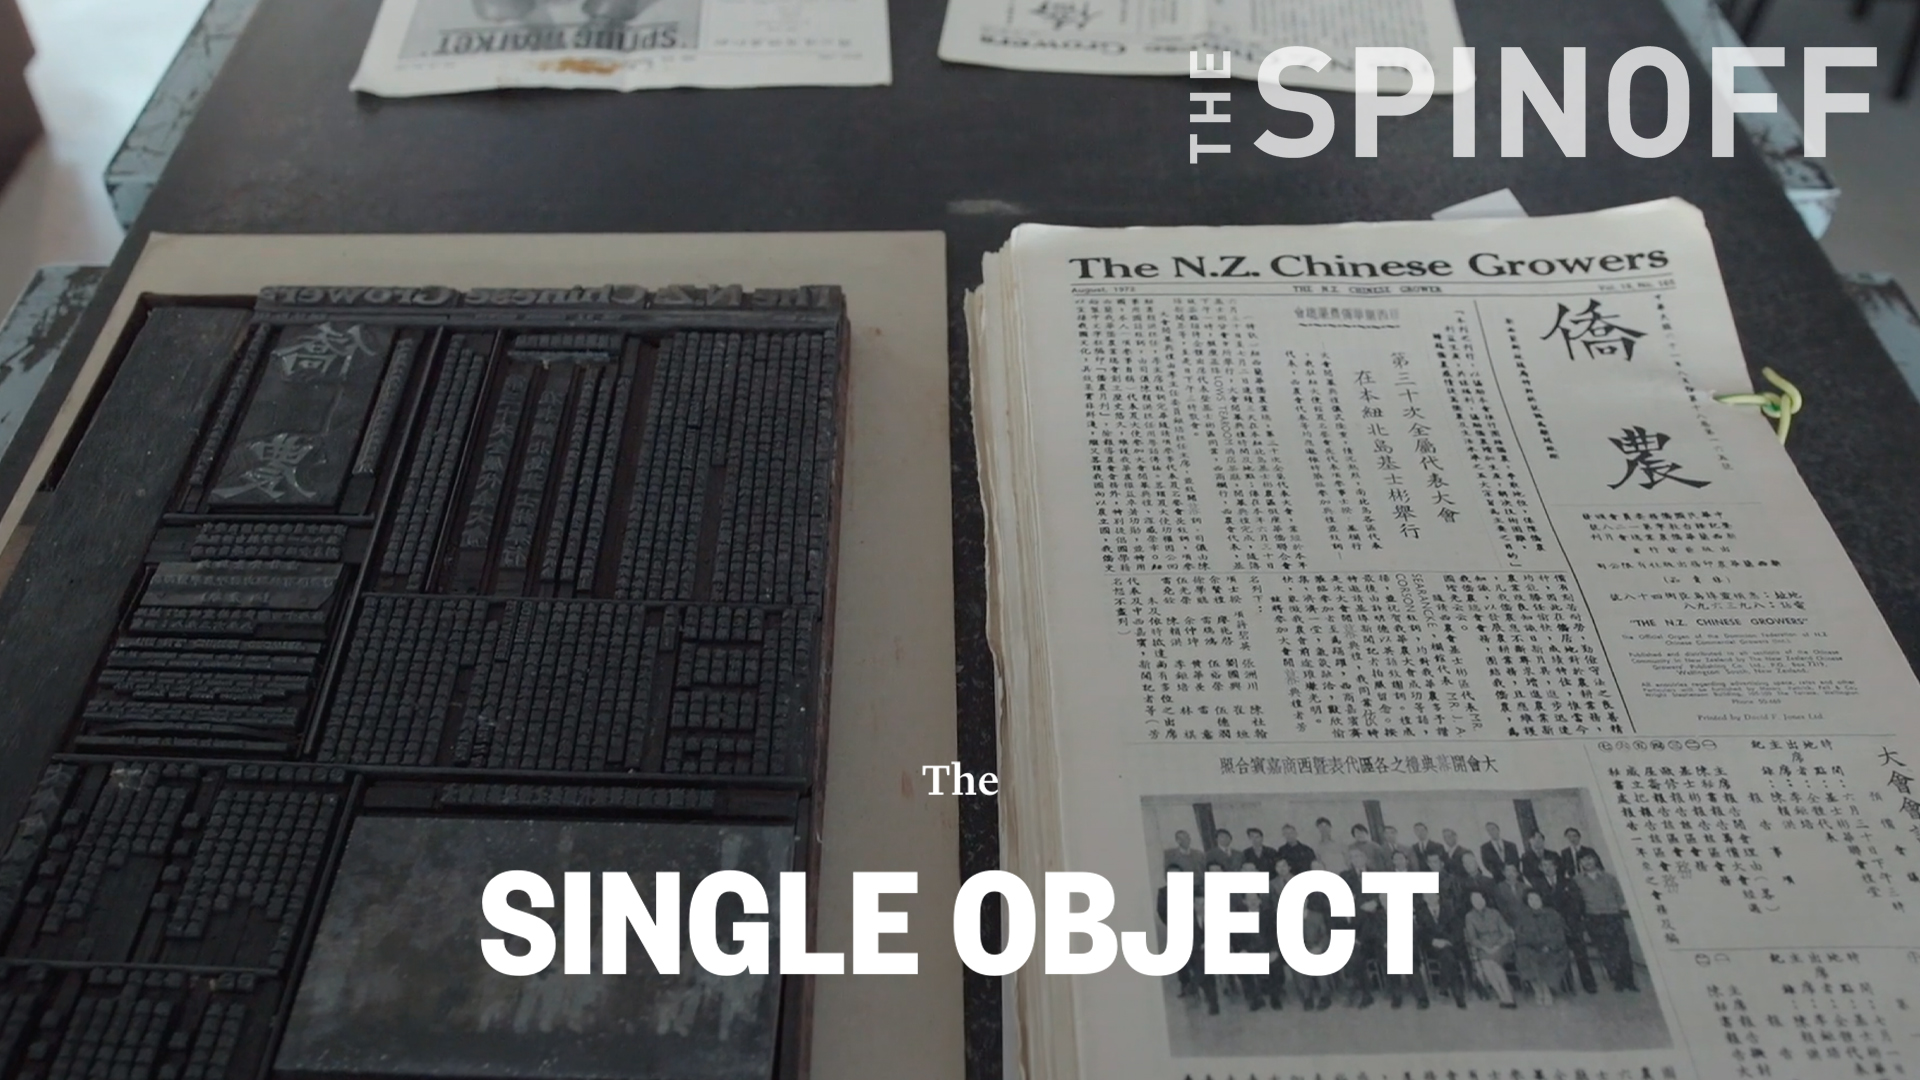 titlecard for The Single Object episode featuring the Chinese heritage types